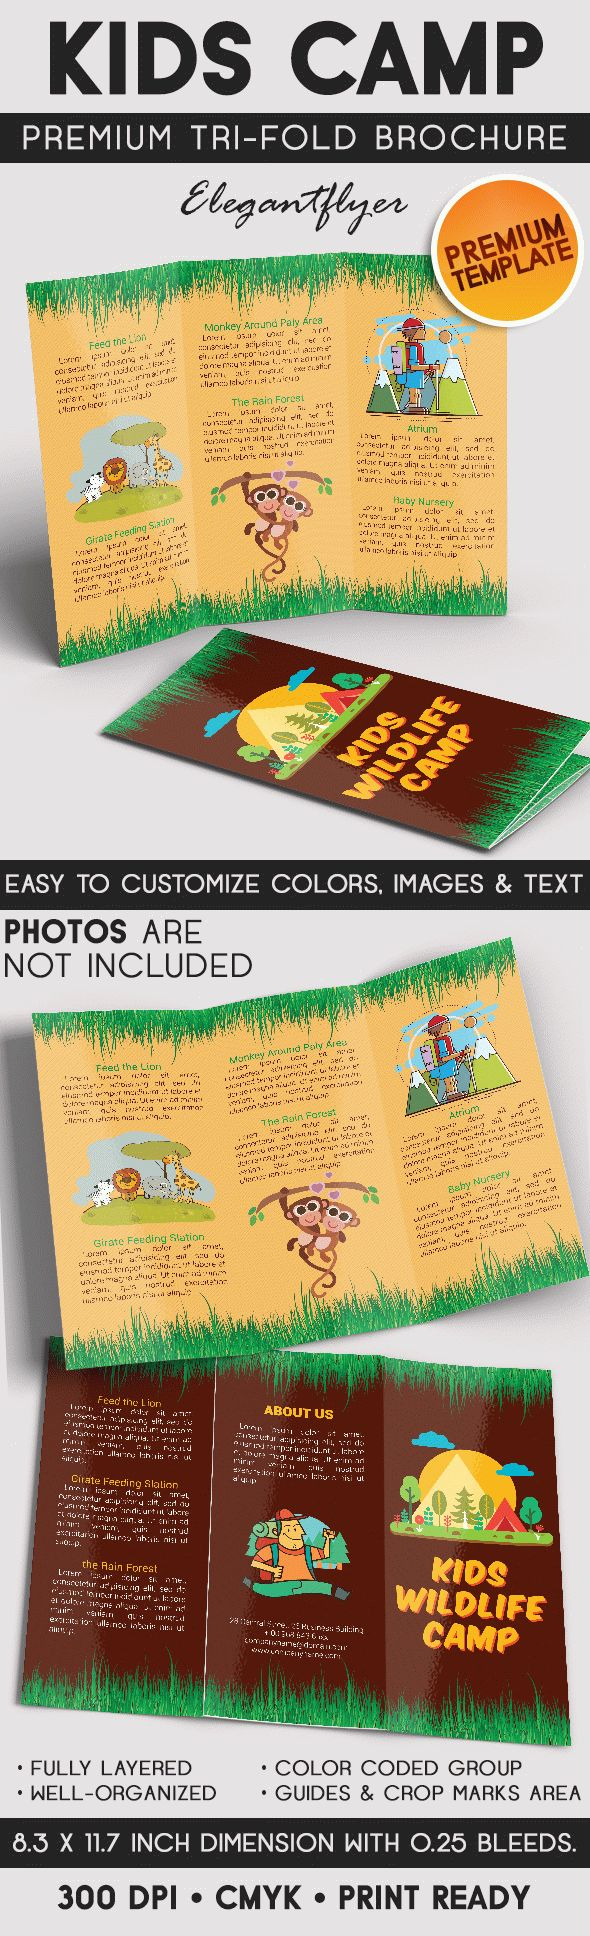 Kids Wildlife Camp – Tri-Fold Brochure  PSD Template